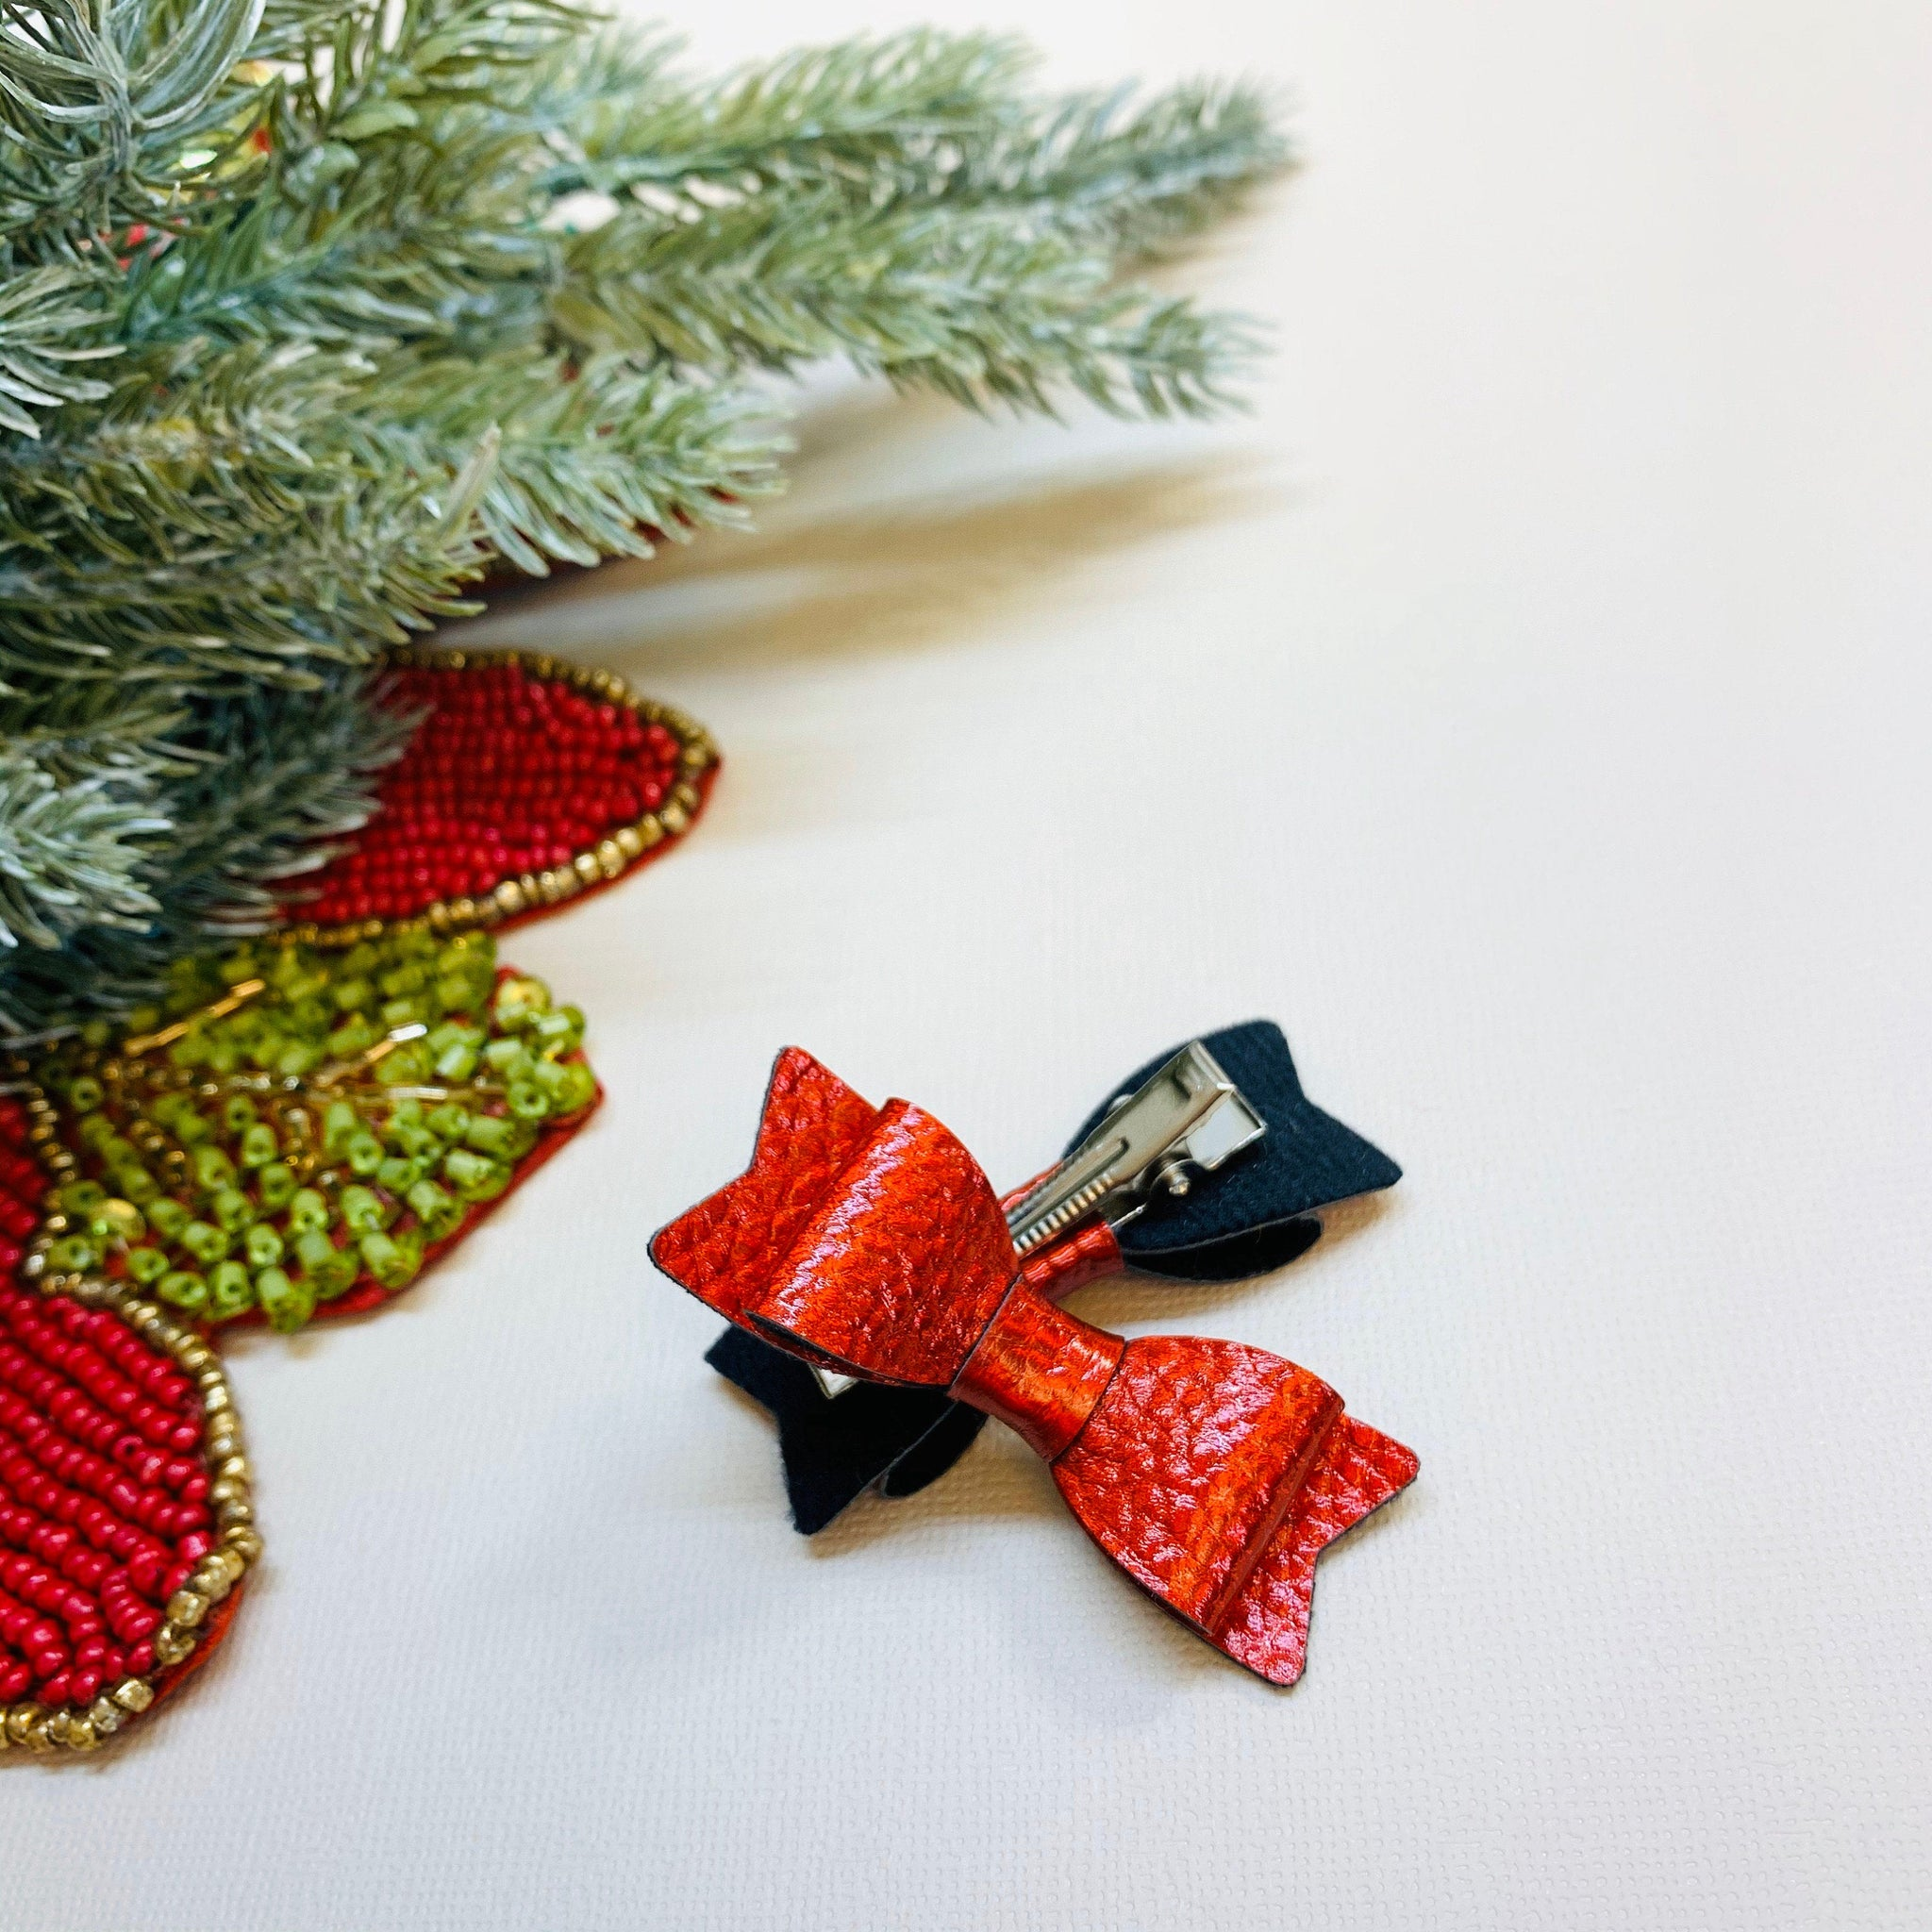 Pigtail clips, Red Mini Bows Hair Clips, Vanaguelite, Alligator Clips, baby bows, Soft Faux Leather Bows, Christmas Bows